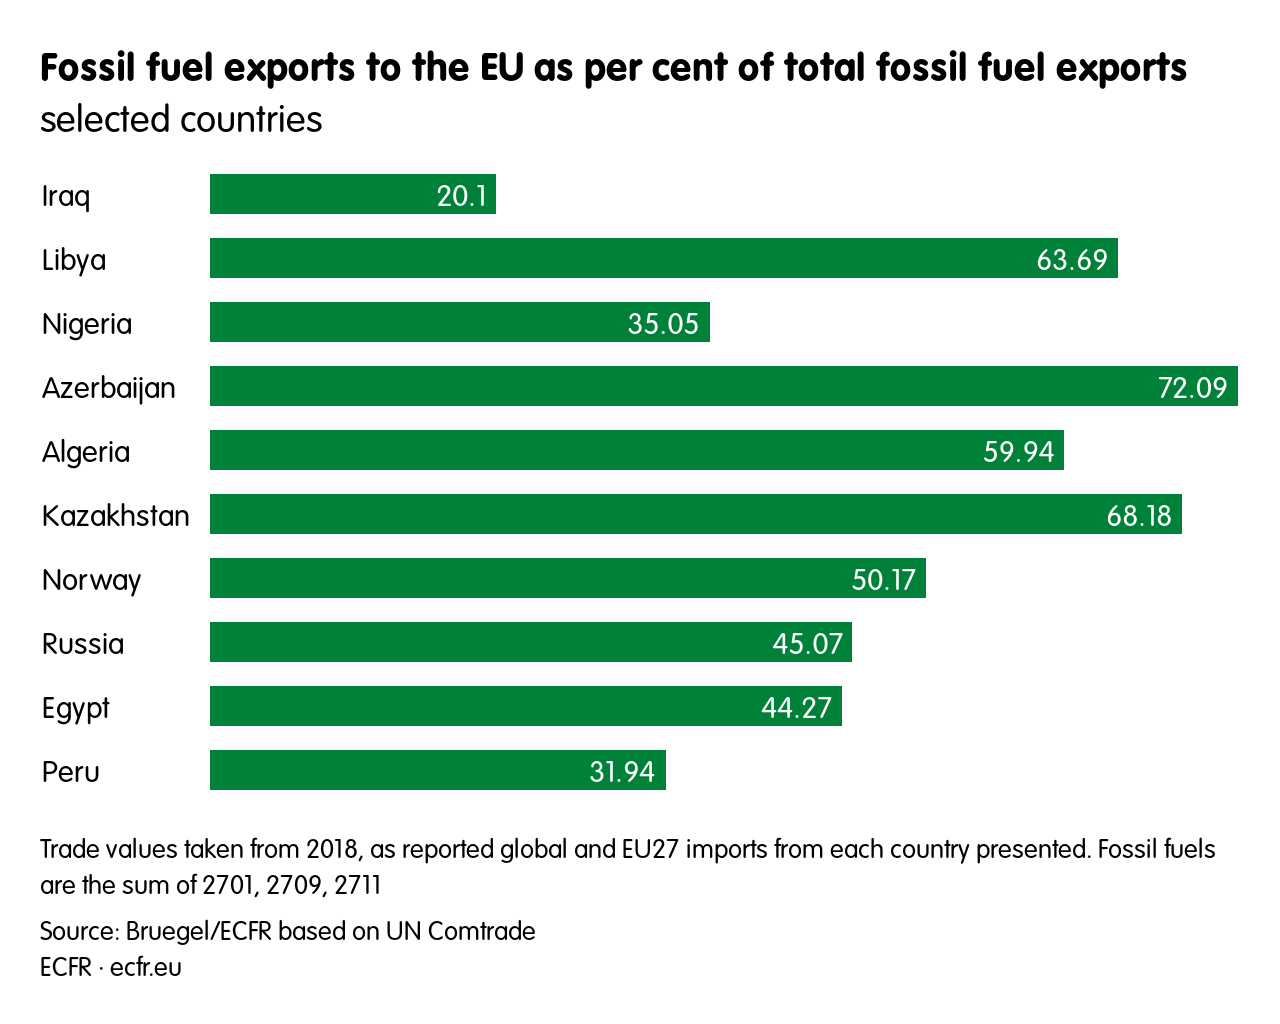 Fossil fuel exports to the EU as per cent of total fossil fuel exports